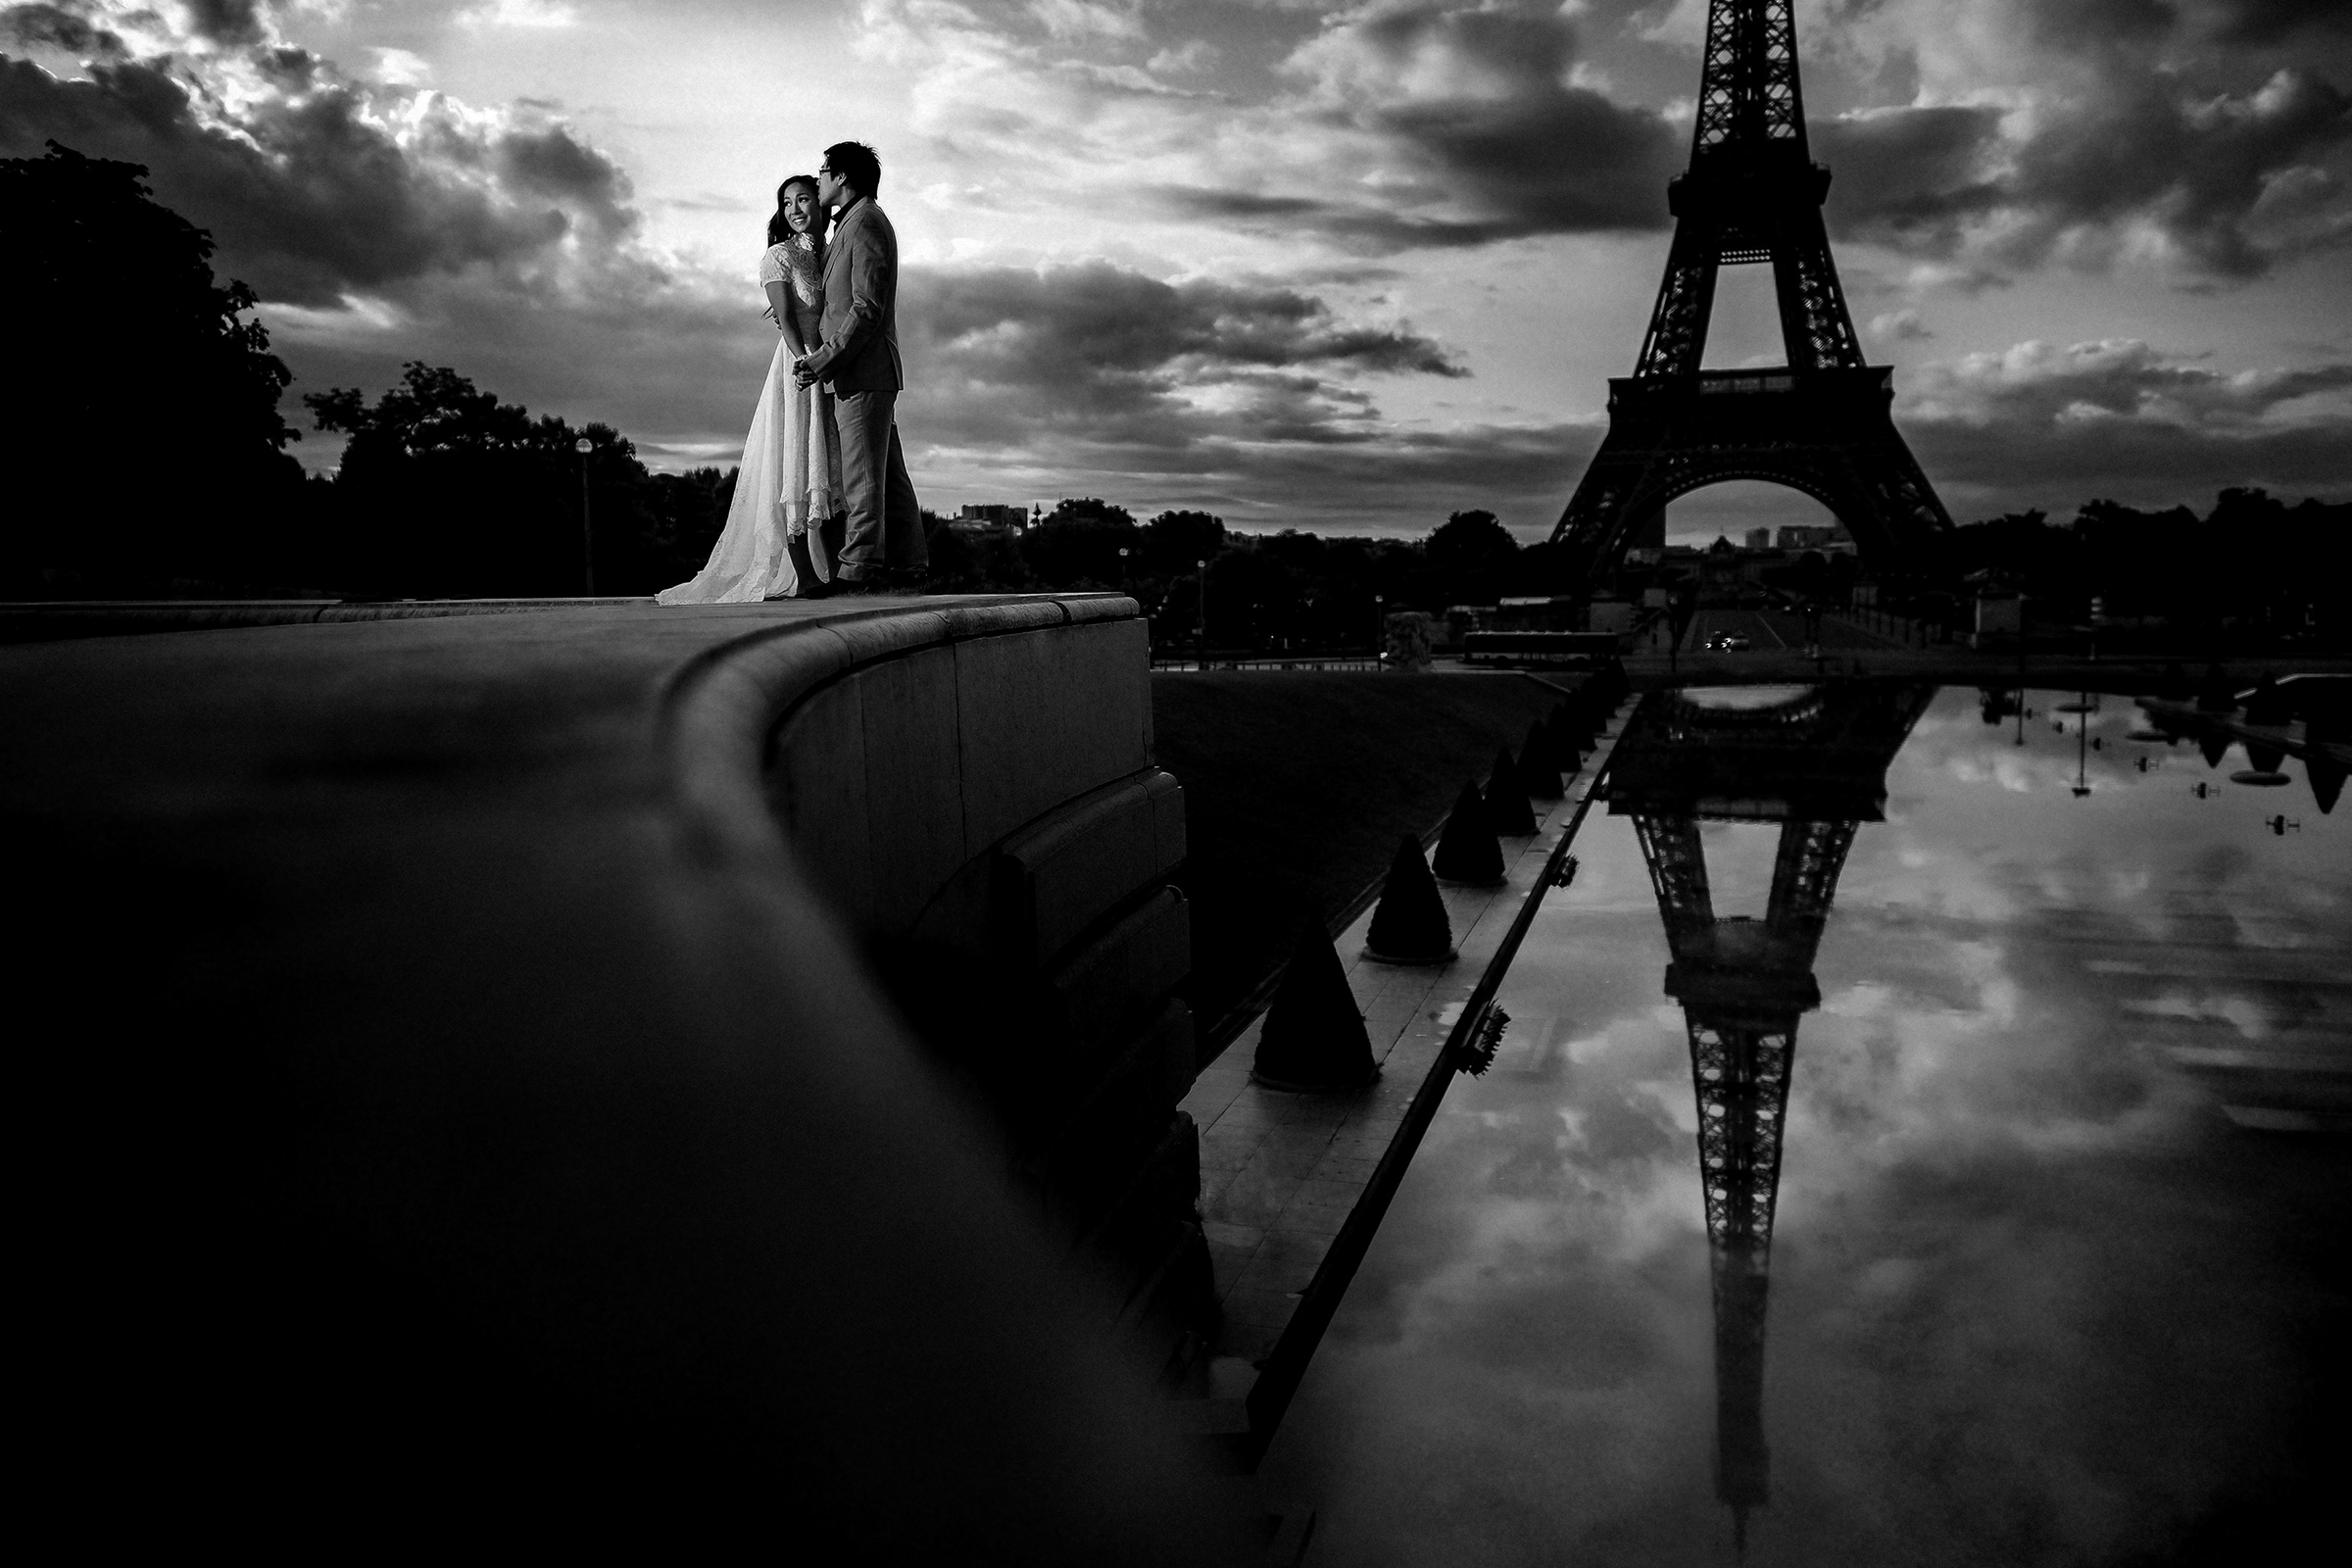 Elegant couple portrait against Eiffel Tower reflected - photo by Matei Horvath Photography